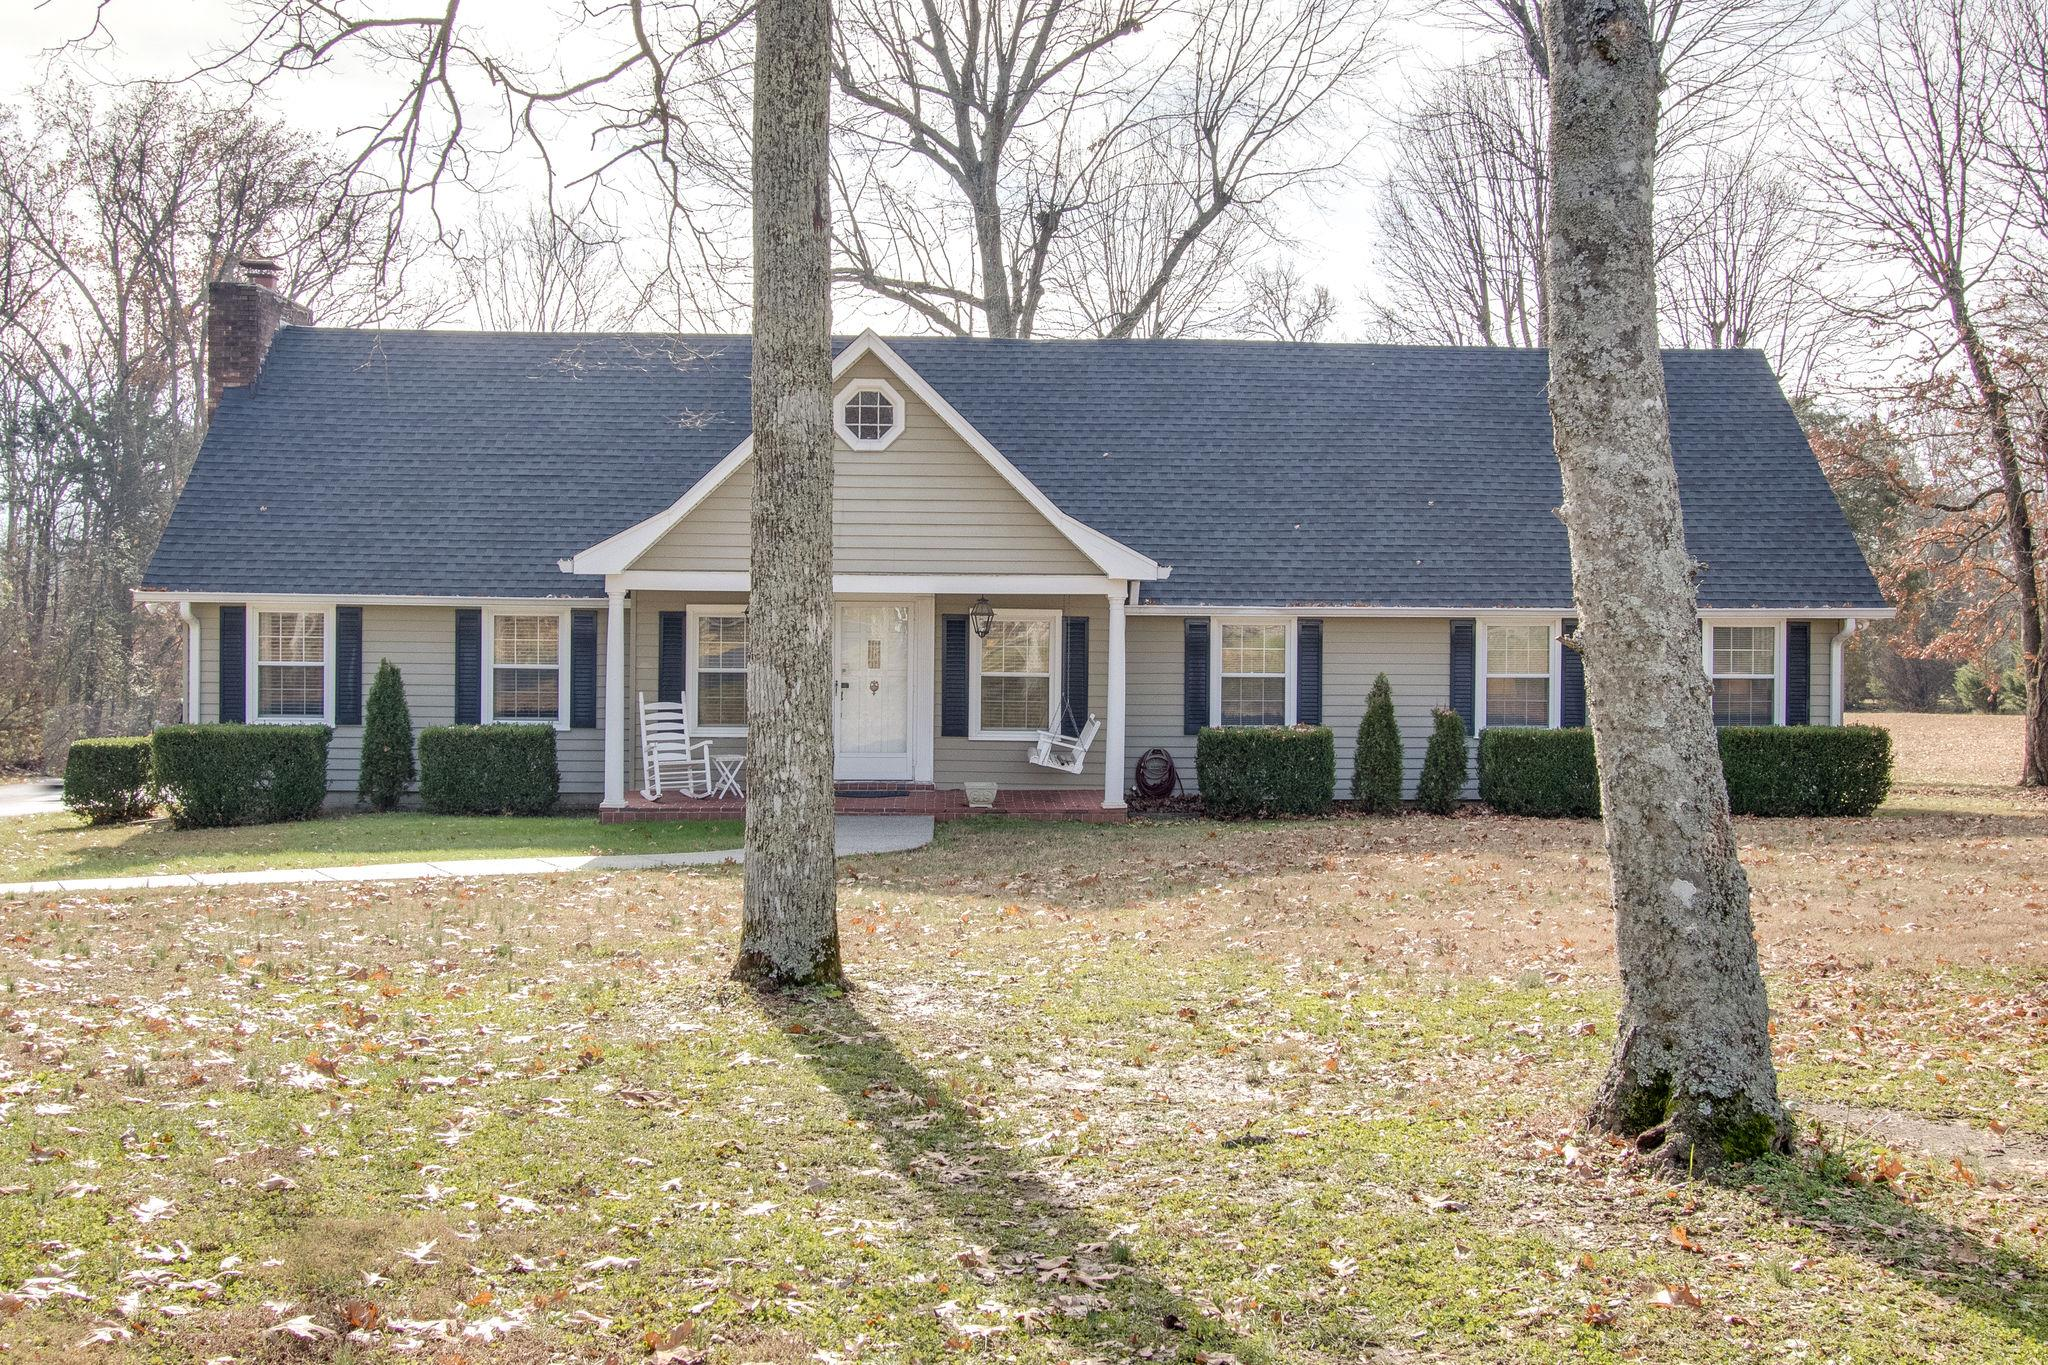 180 Academy Rd, Lebanon in Wilson County County, TN 37087 Home for Sale